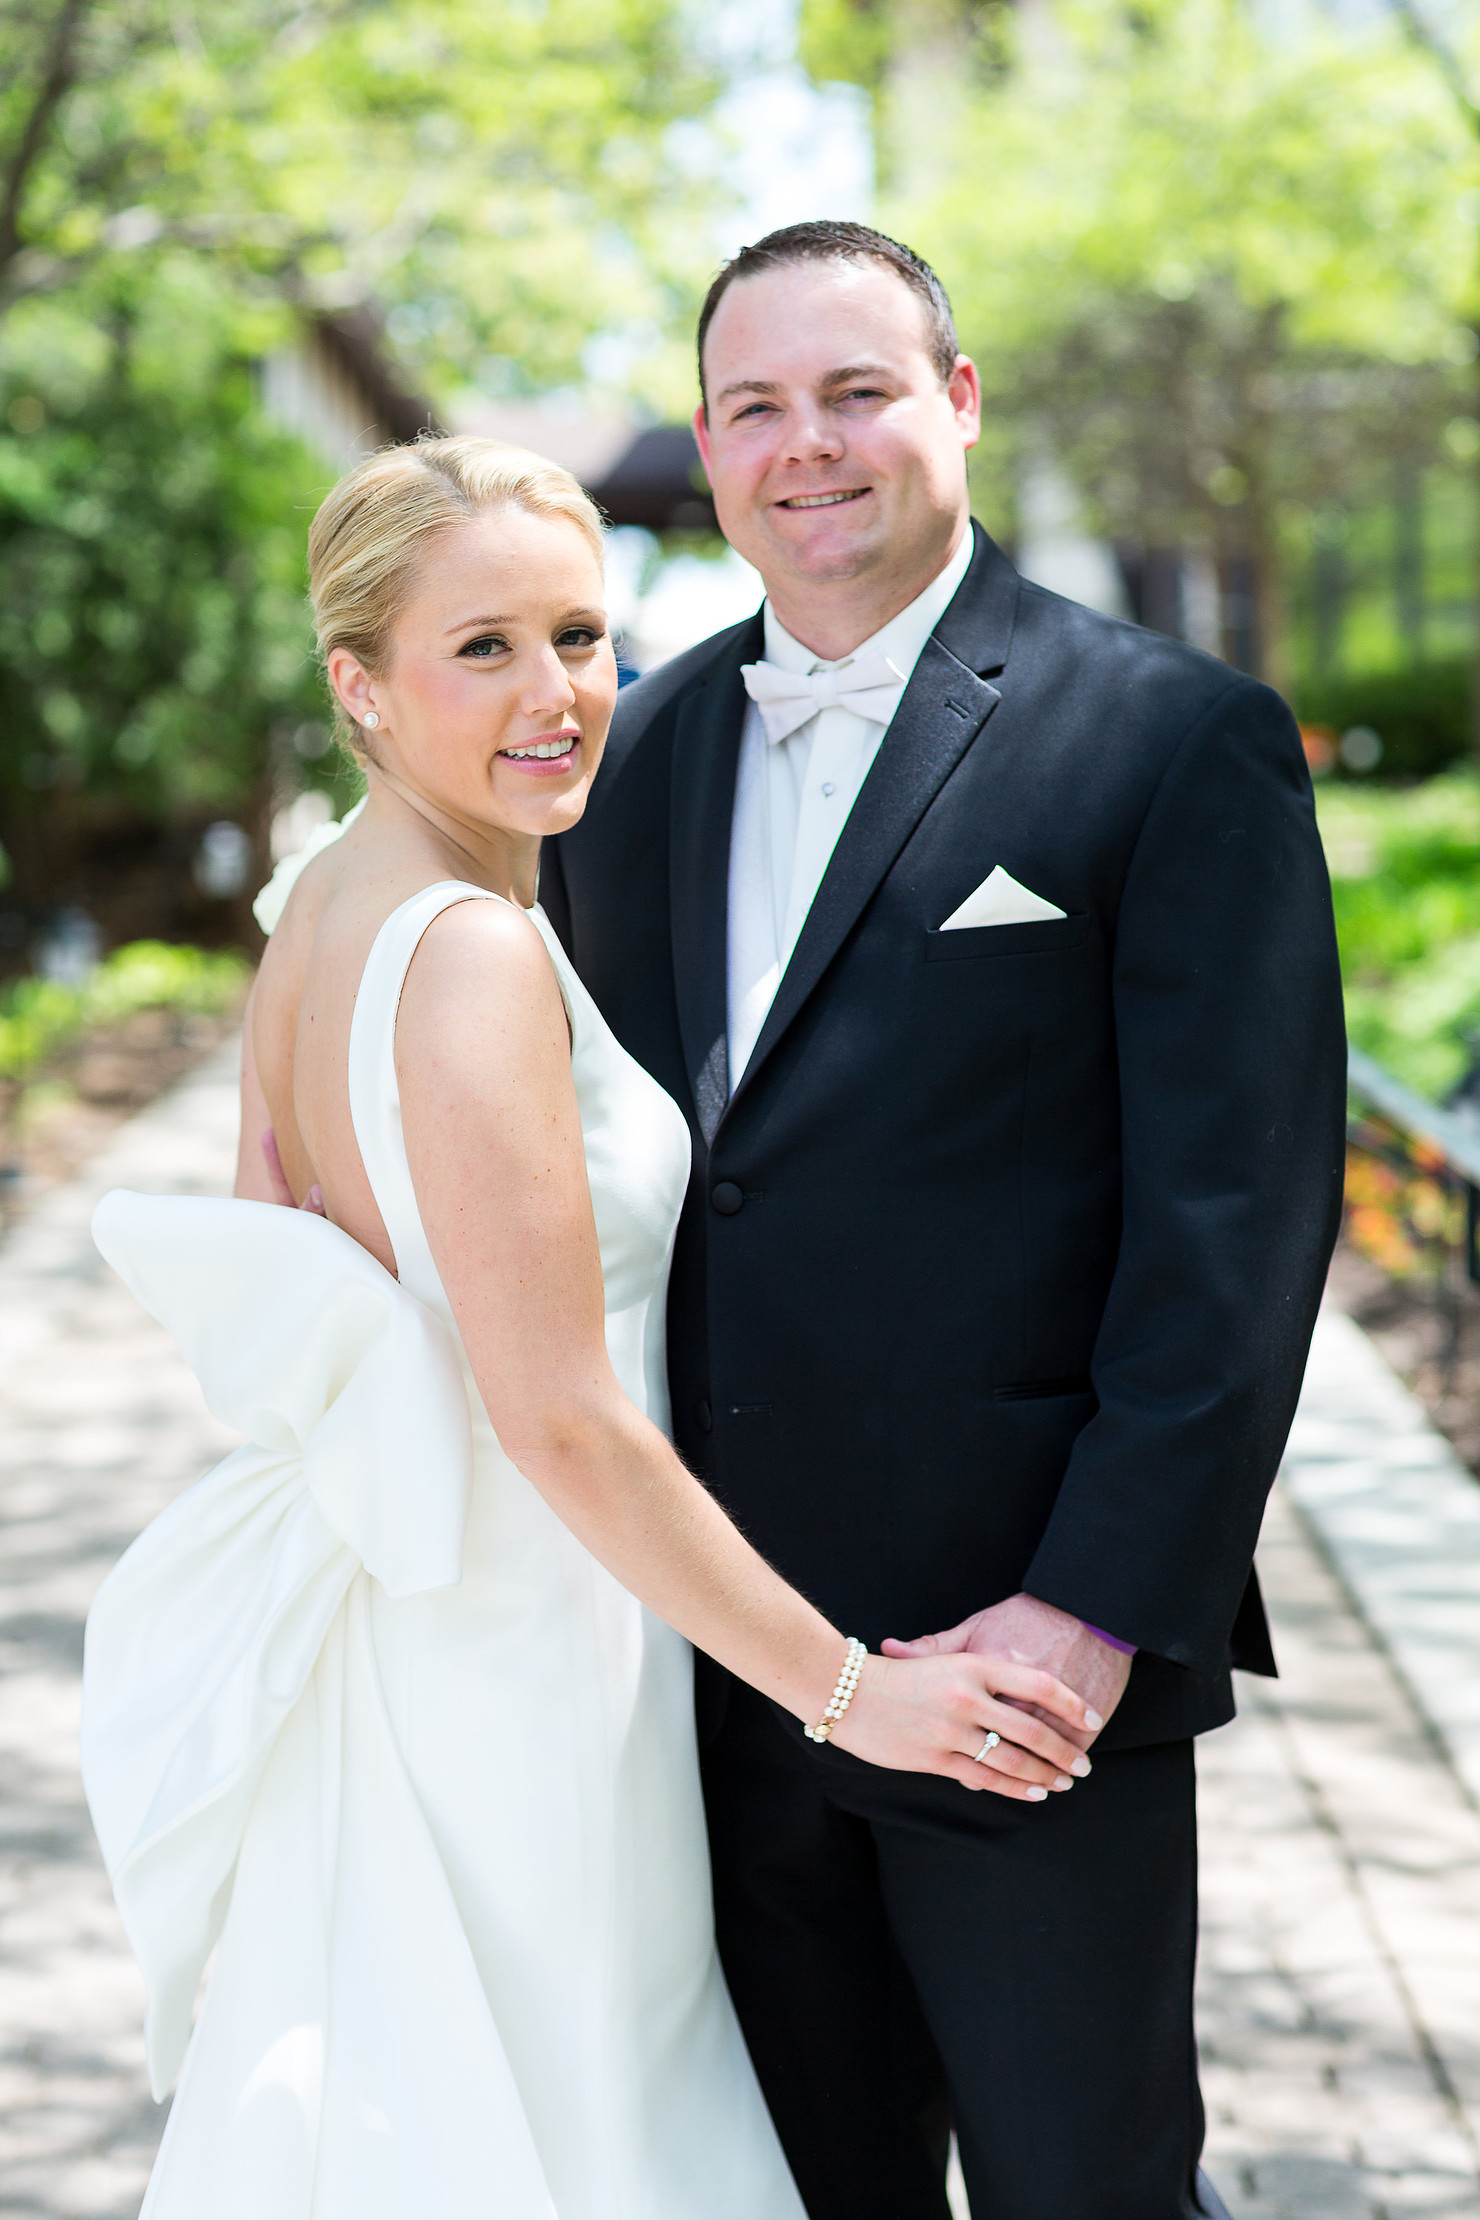 Janine & Dan Married 5/18/18 at Interlachen Country club | Photography    La Vie Photography